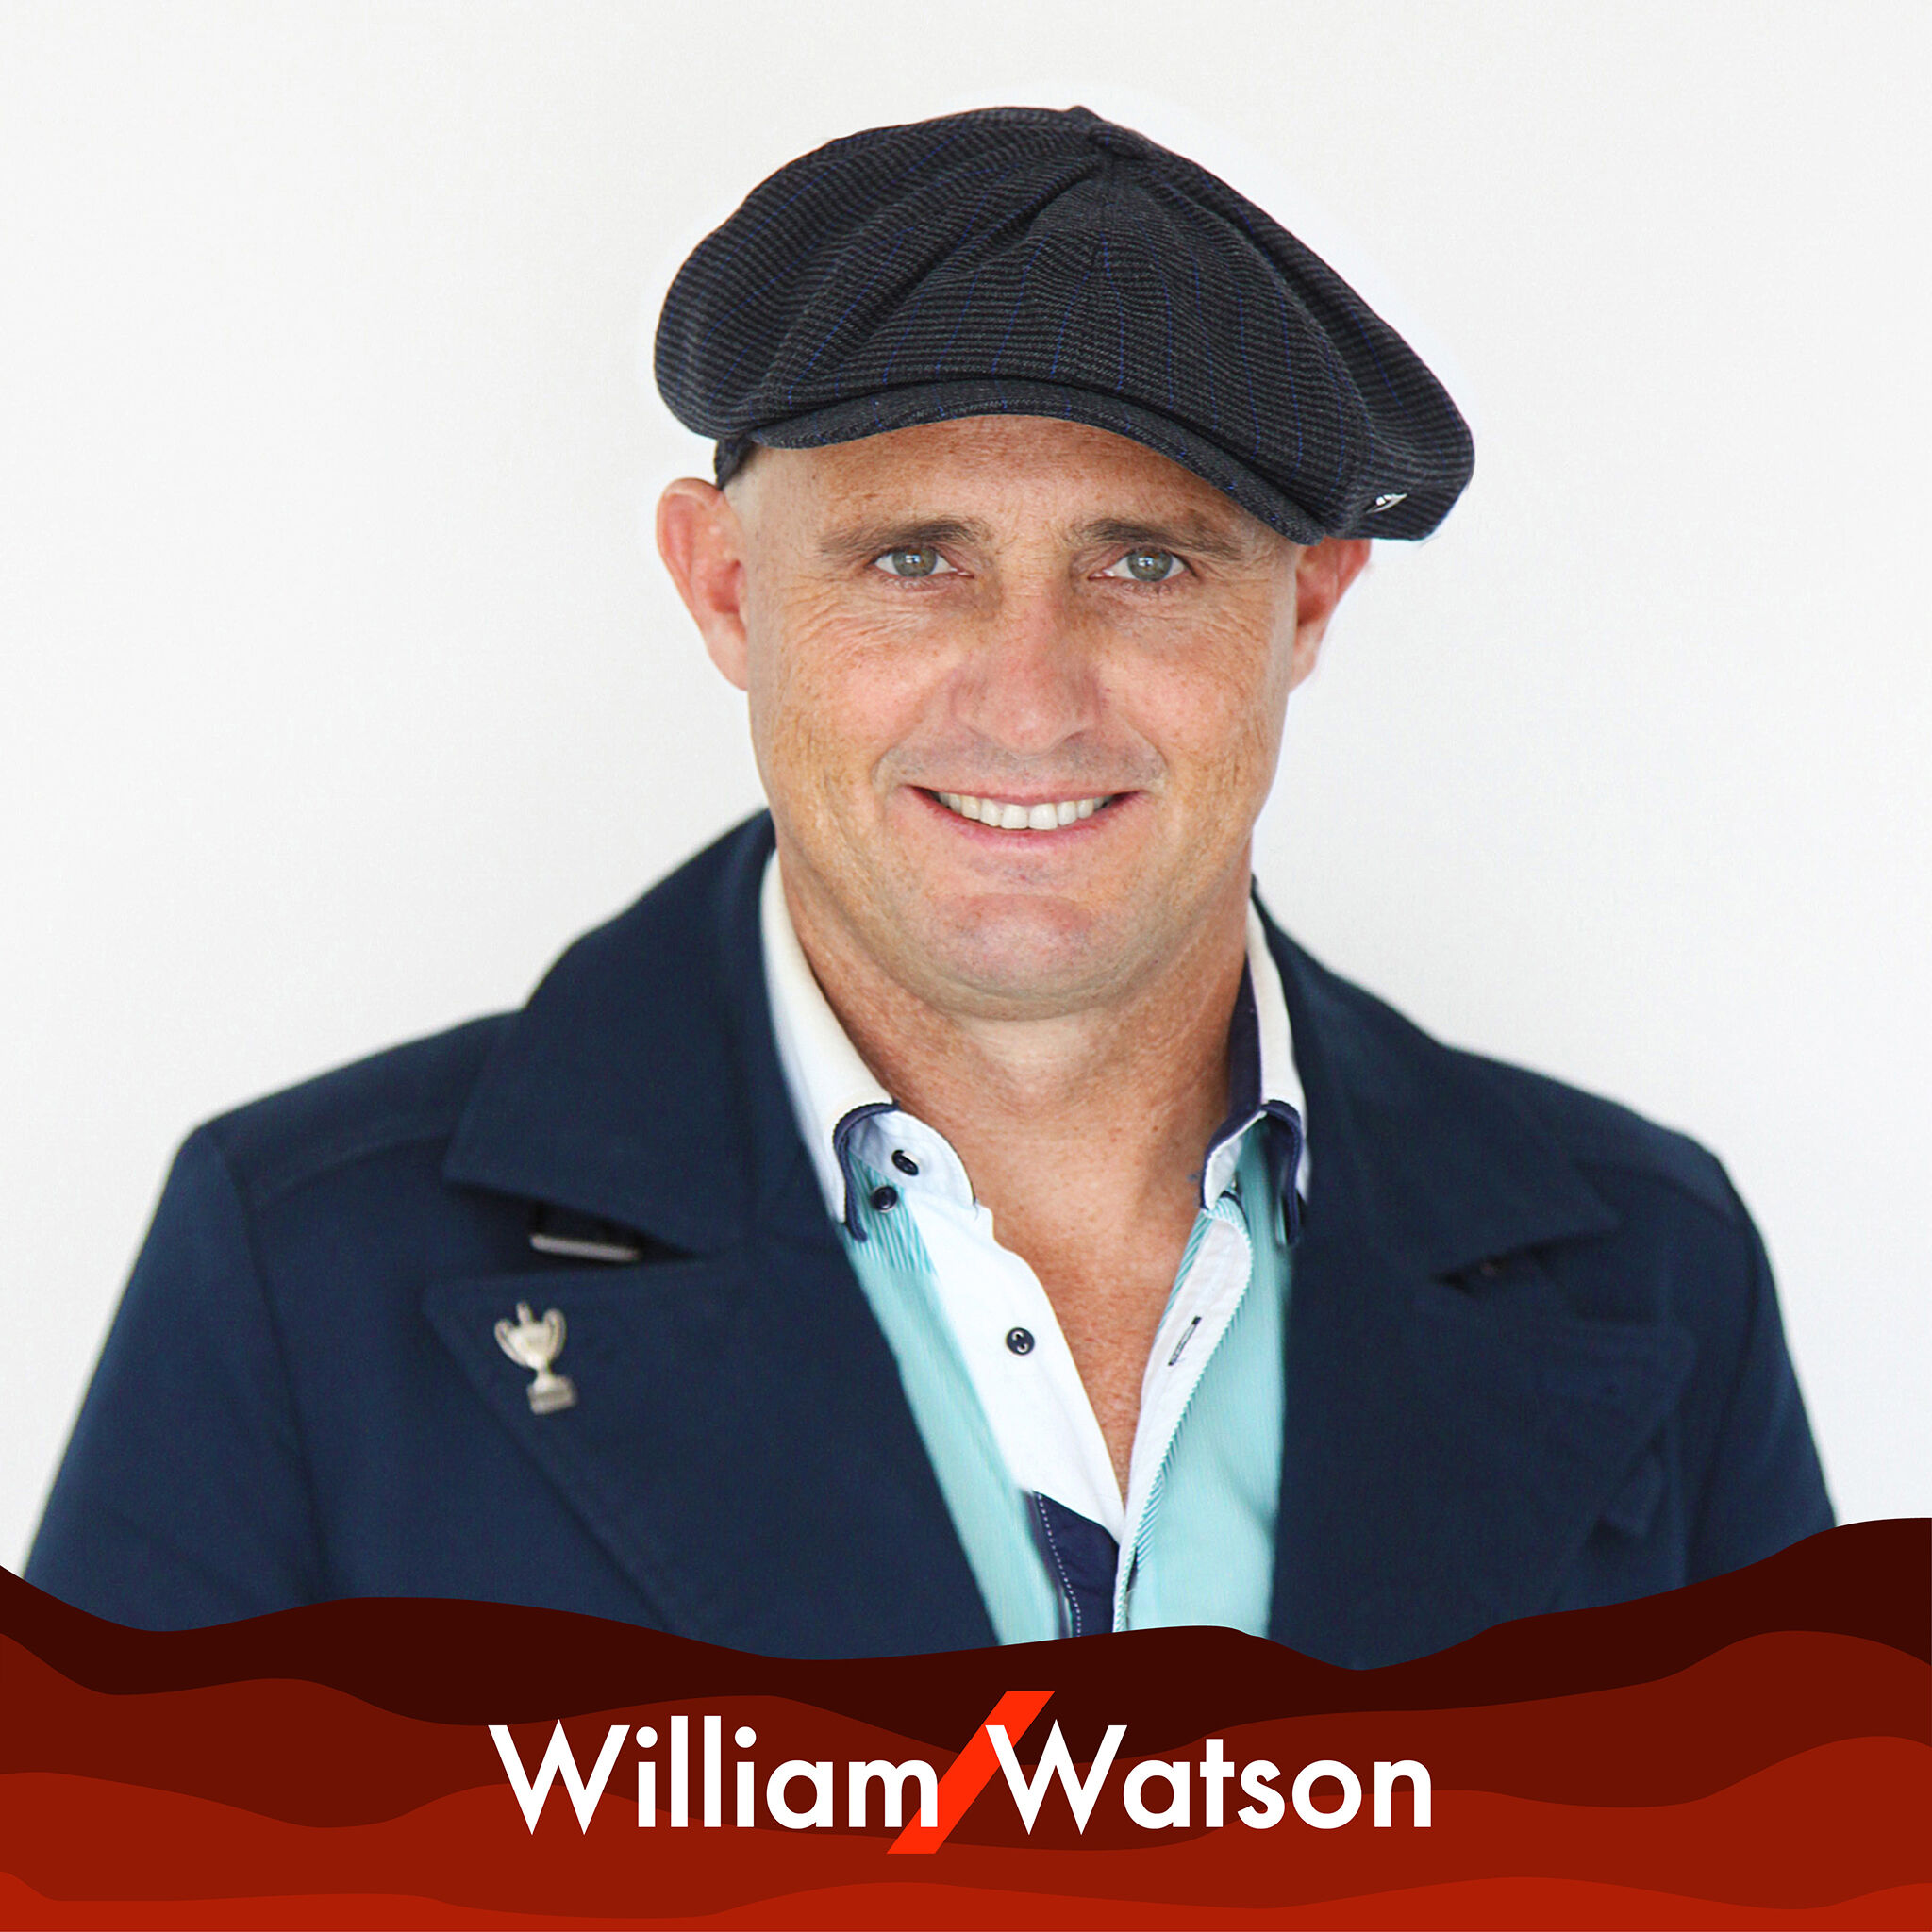 A picture of William Watson